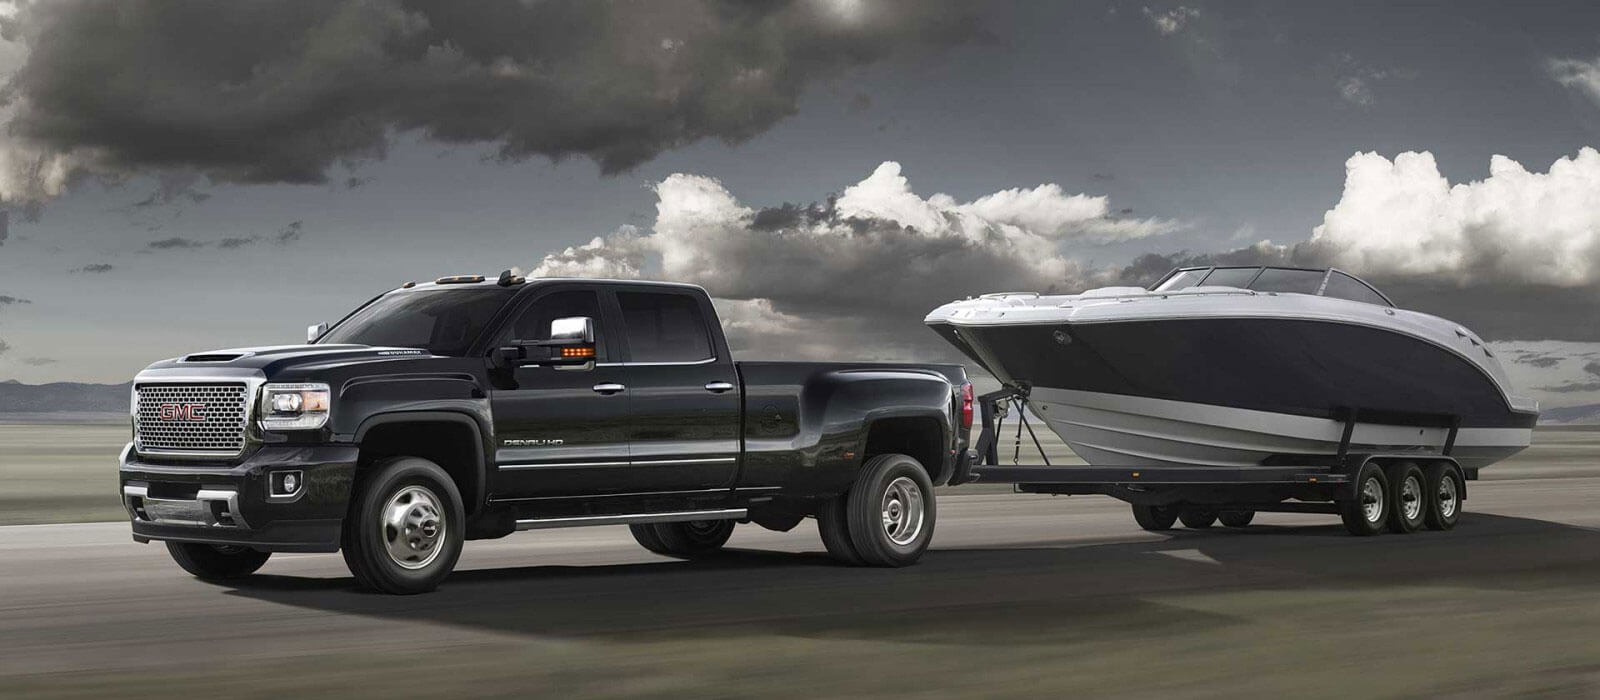 The Incredible Power Of 2017 Gmc Sierra 3500 Hd Dually Towing A Boat